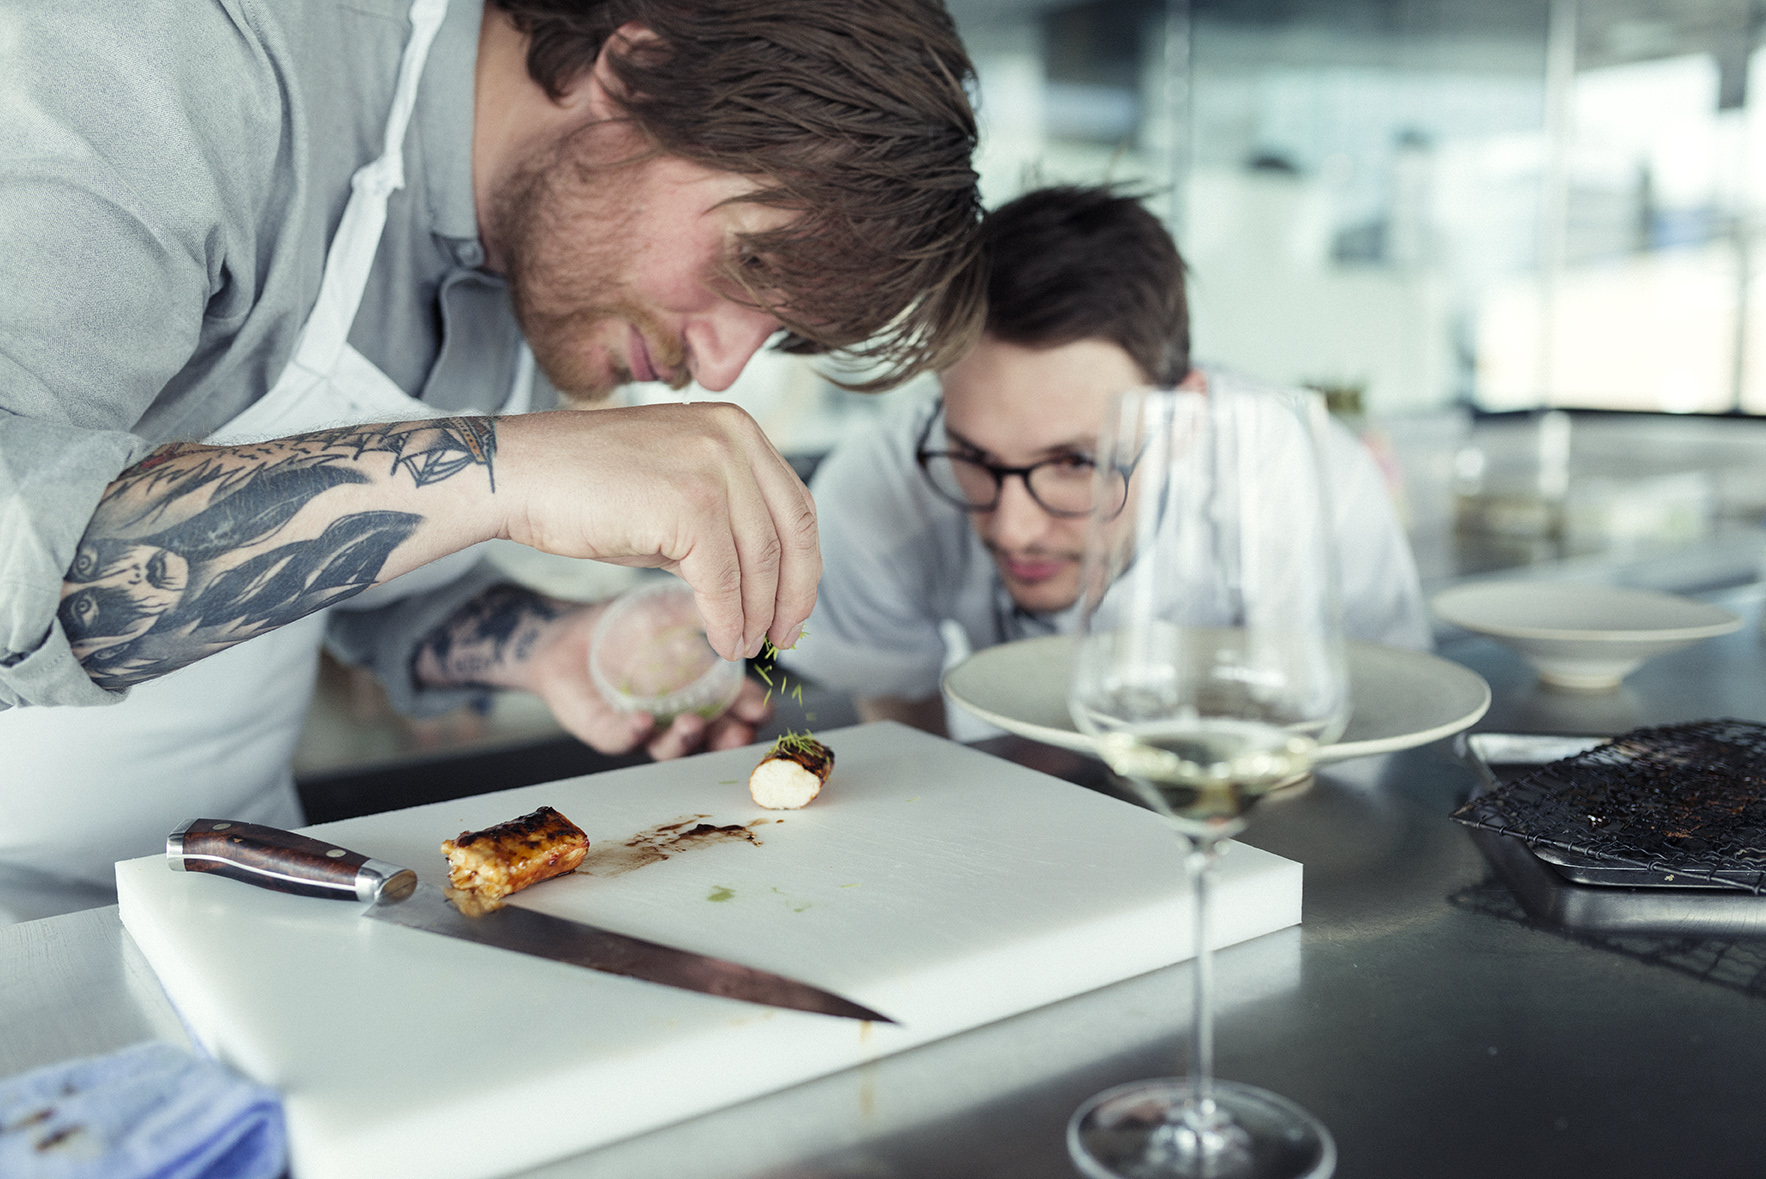 Why This 3-Star Restaurant Has a 3-Day Workweek - MUNCHIES